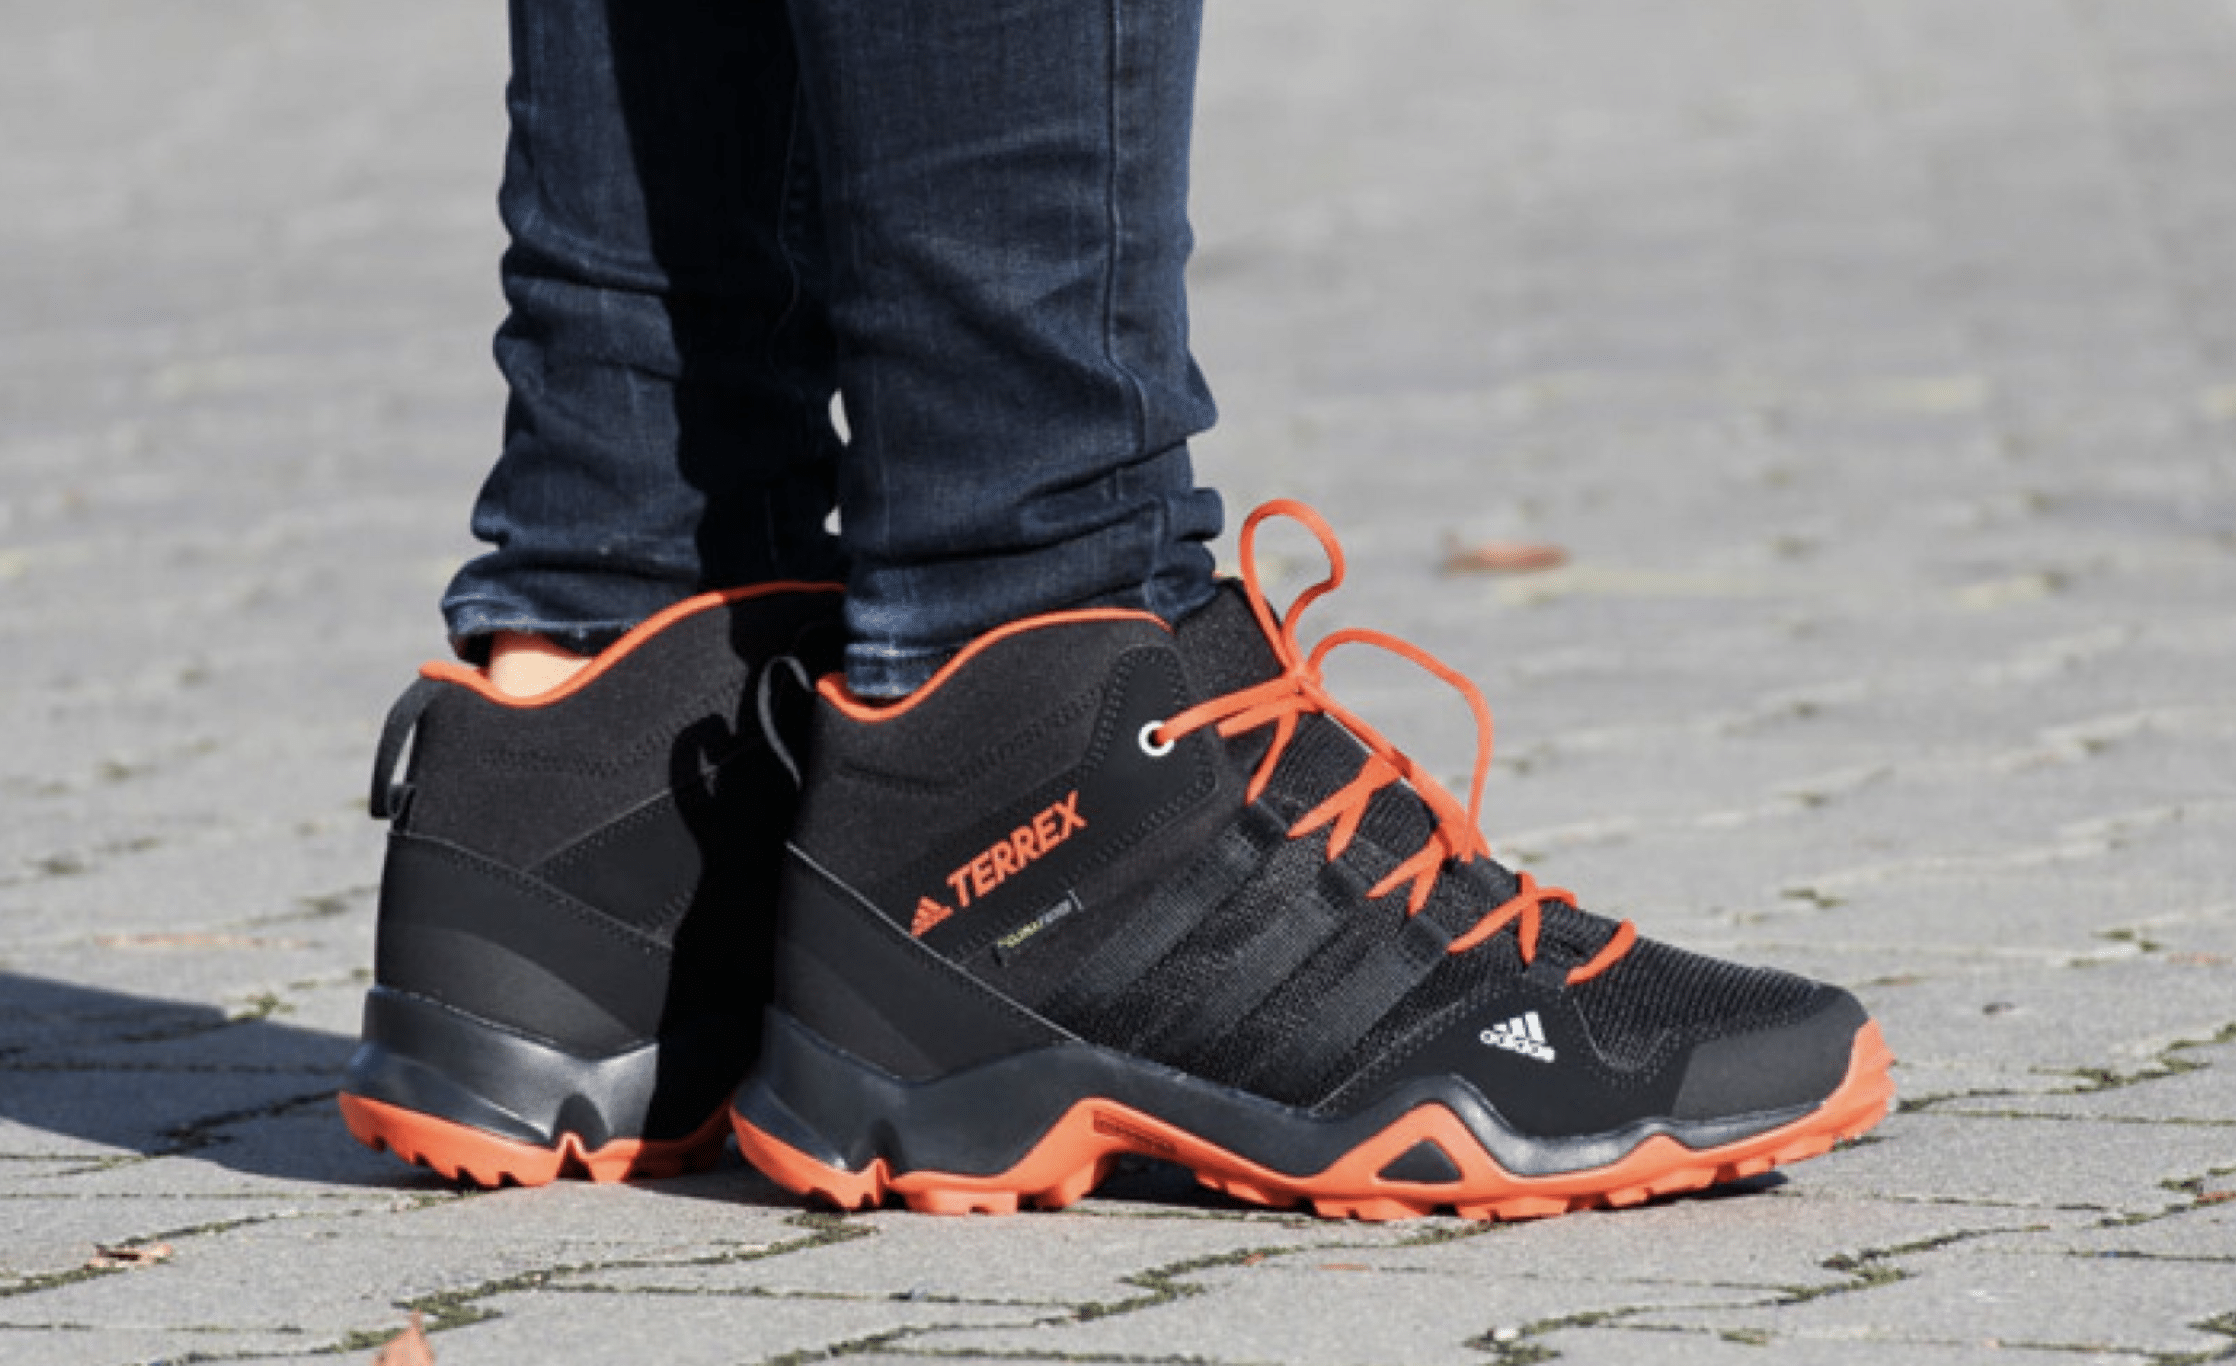 Adidas Terrex AX2R Review - Finally The Ultimate Hiking Shoe